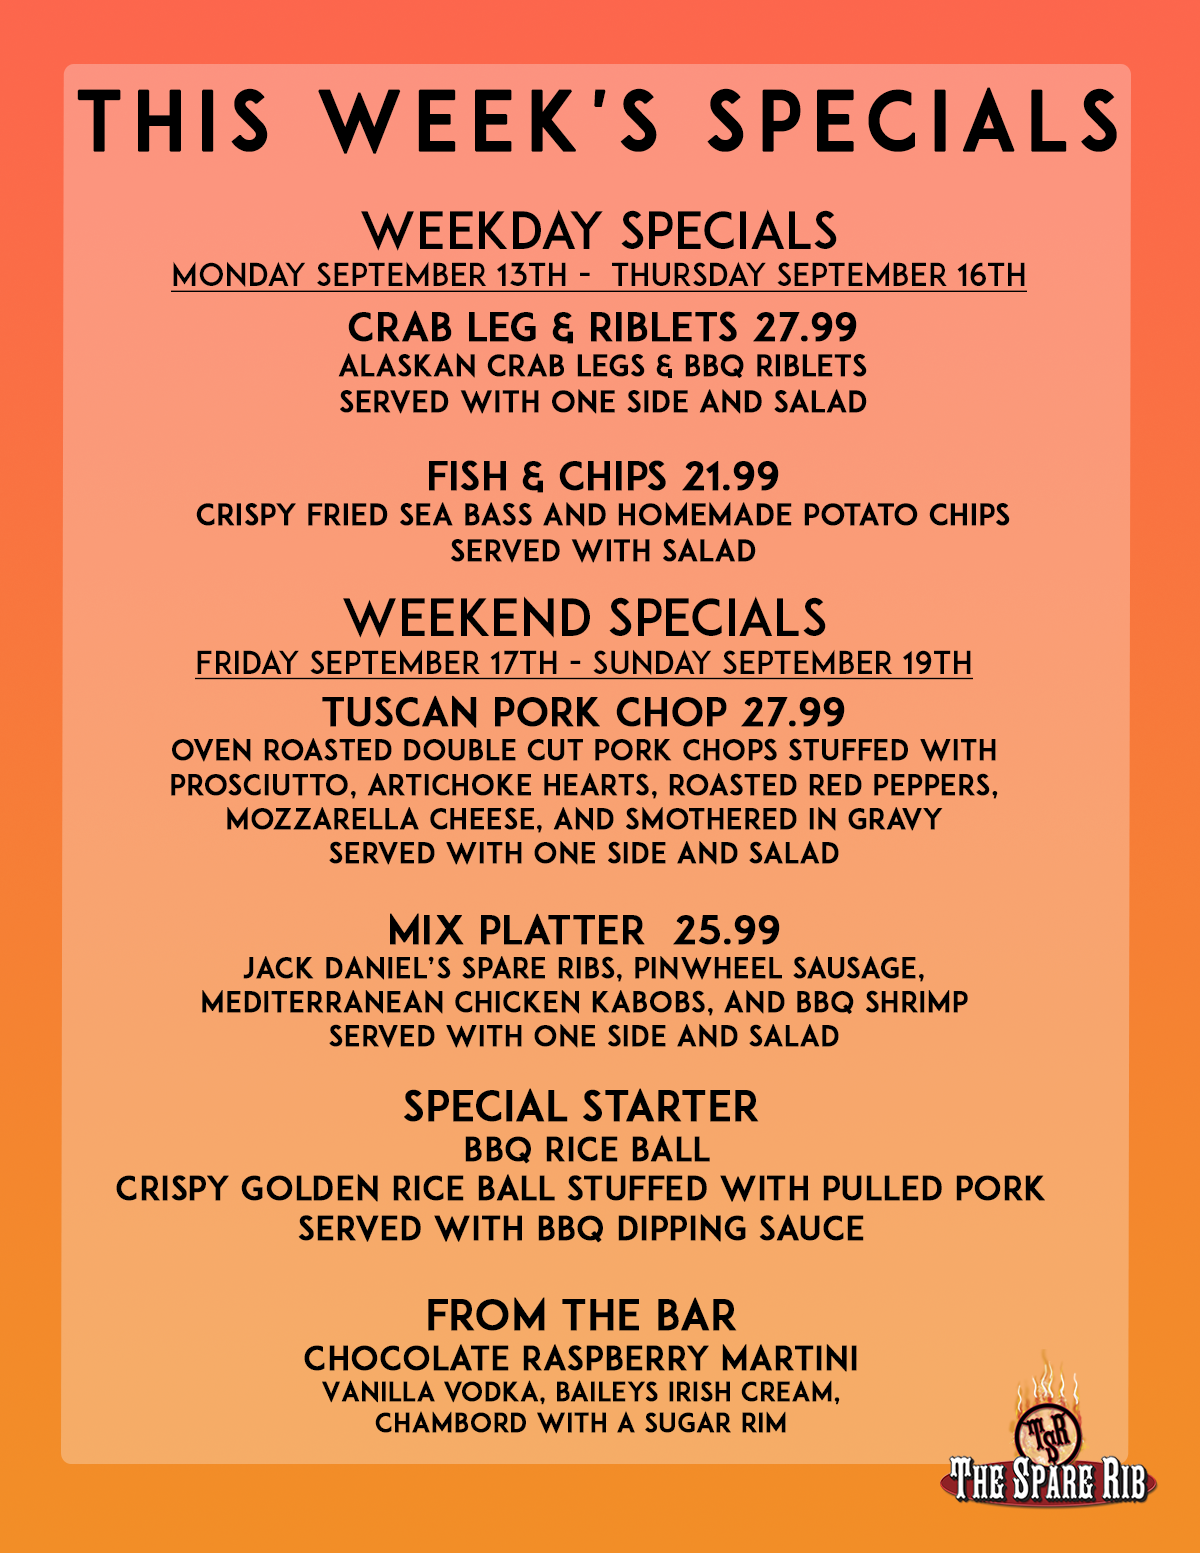 This Week's Specials at The Spare Rib